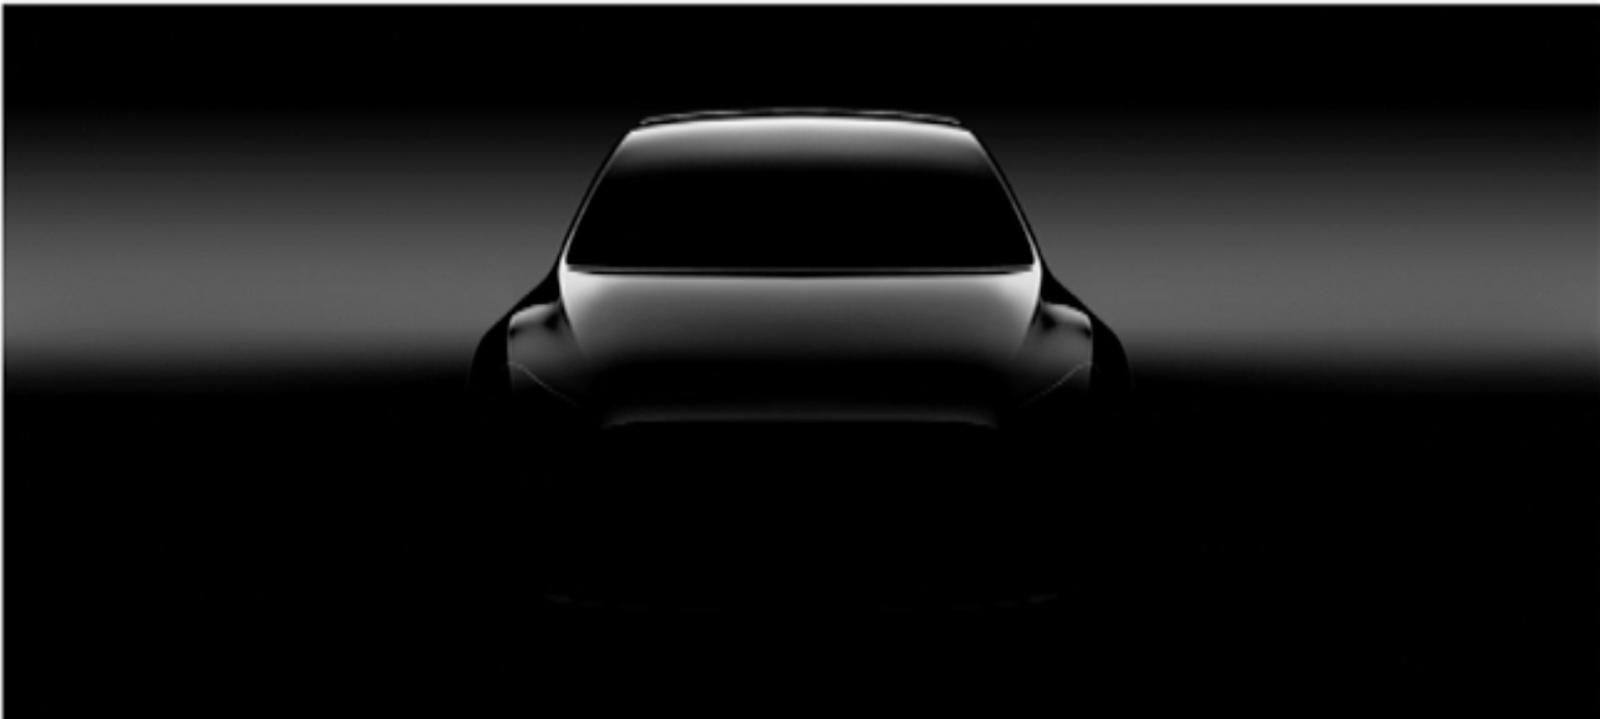 Tesla wants Model Y to reach volume production 'likely' at